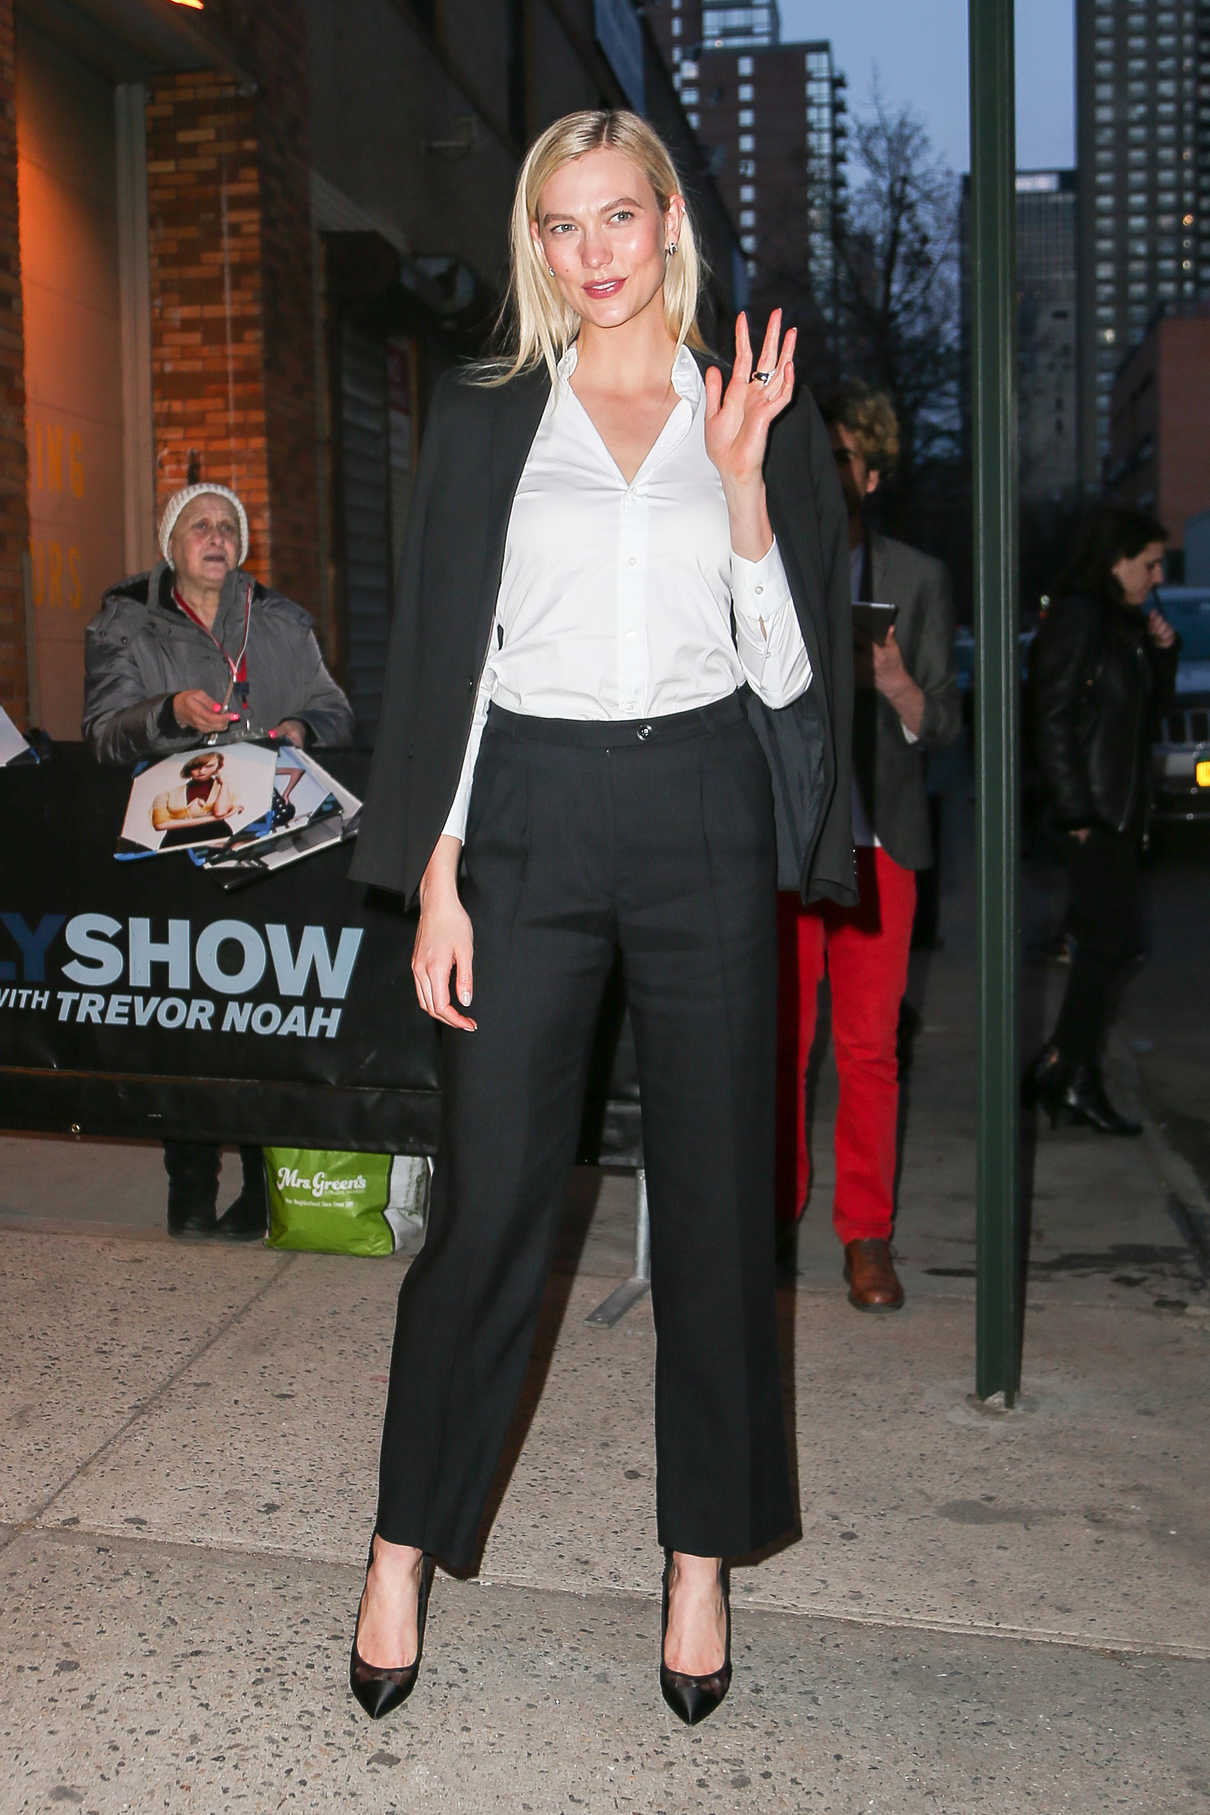 Karlie Kloss Arrives at The Daily Show with Trevor Noah in New York City 04/12/2018-4